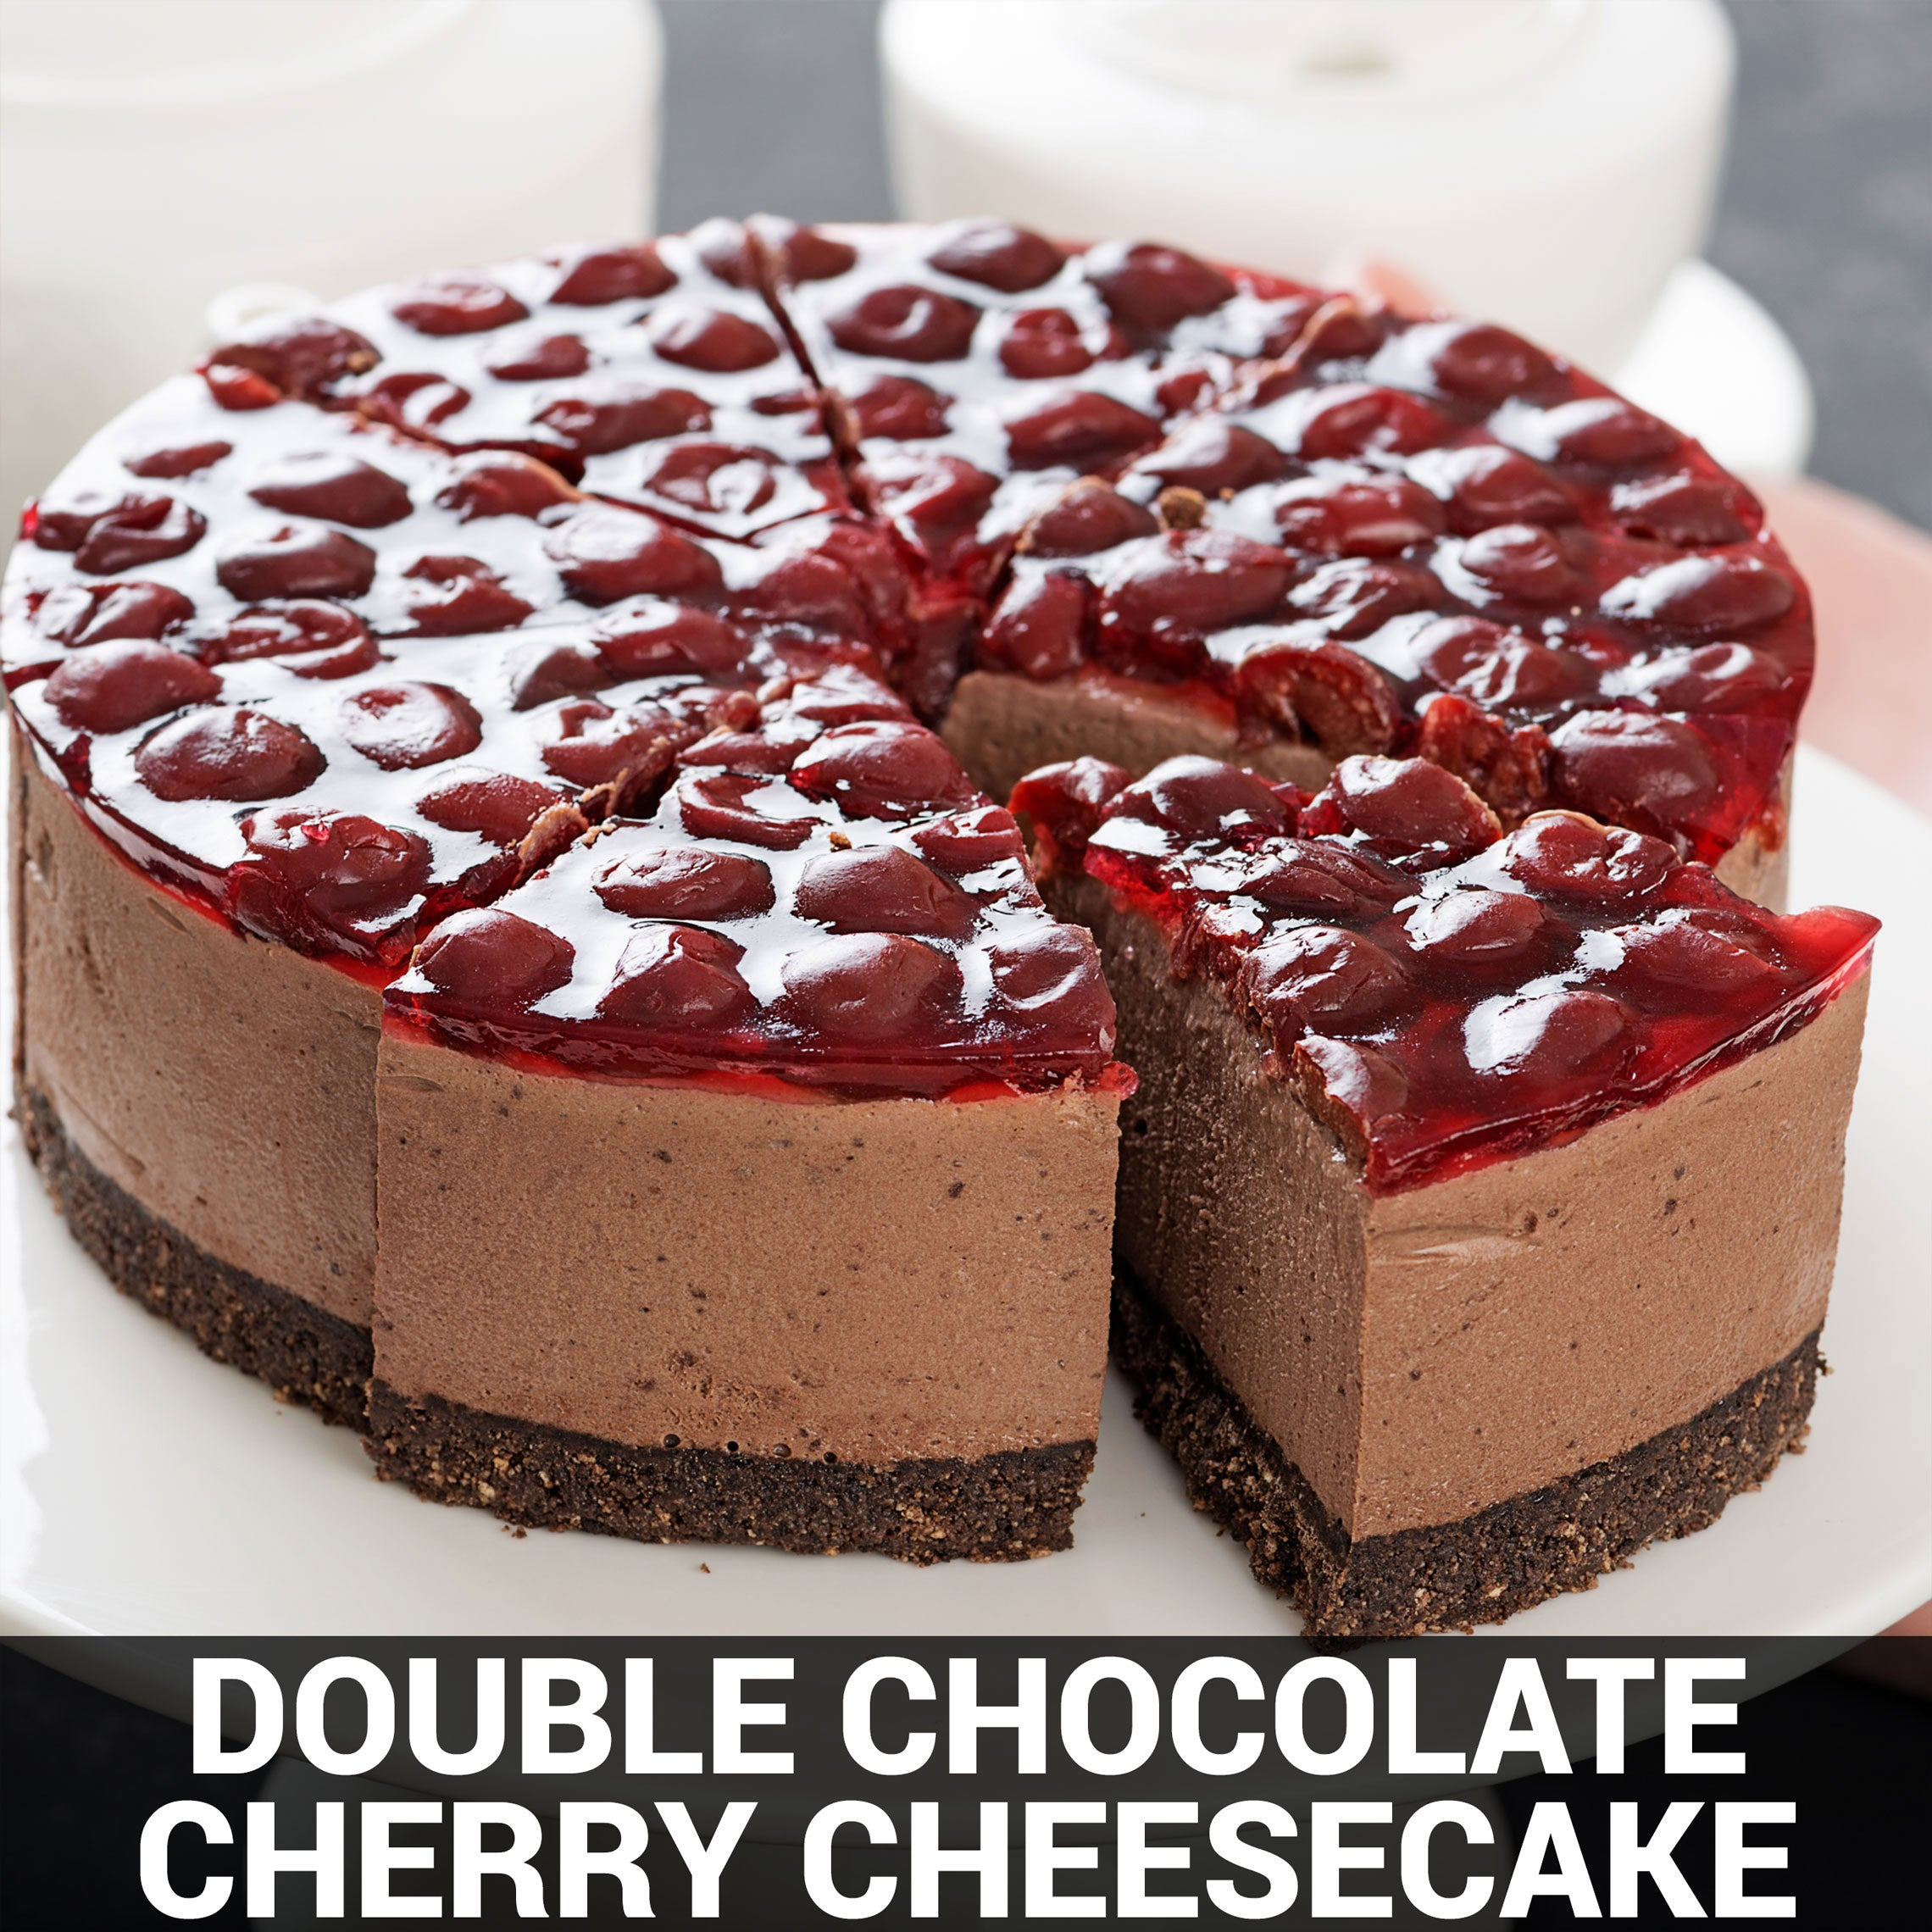 Double Chocolate Cherry Cheesecake Recipe - Foods Alive